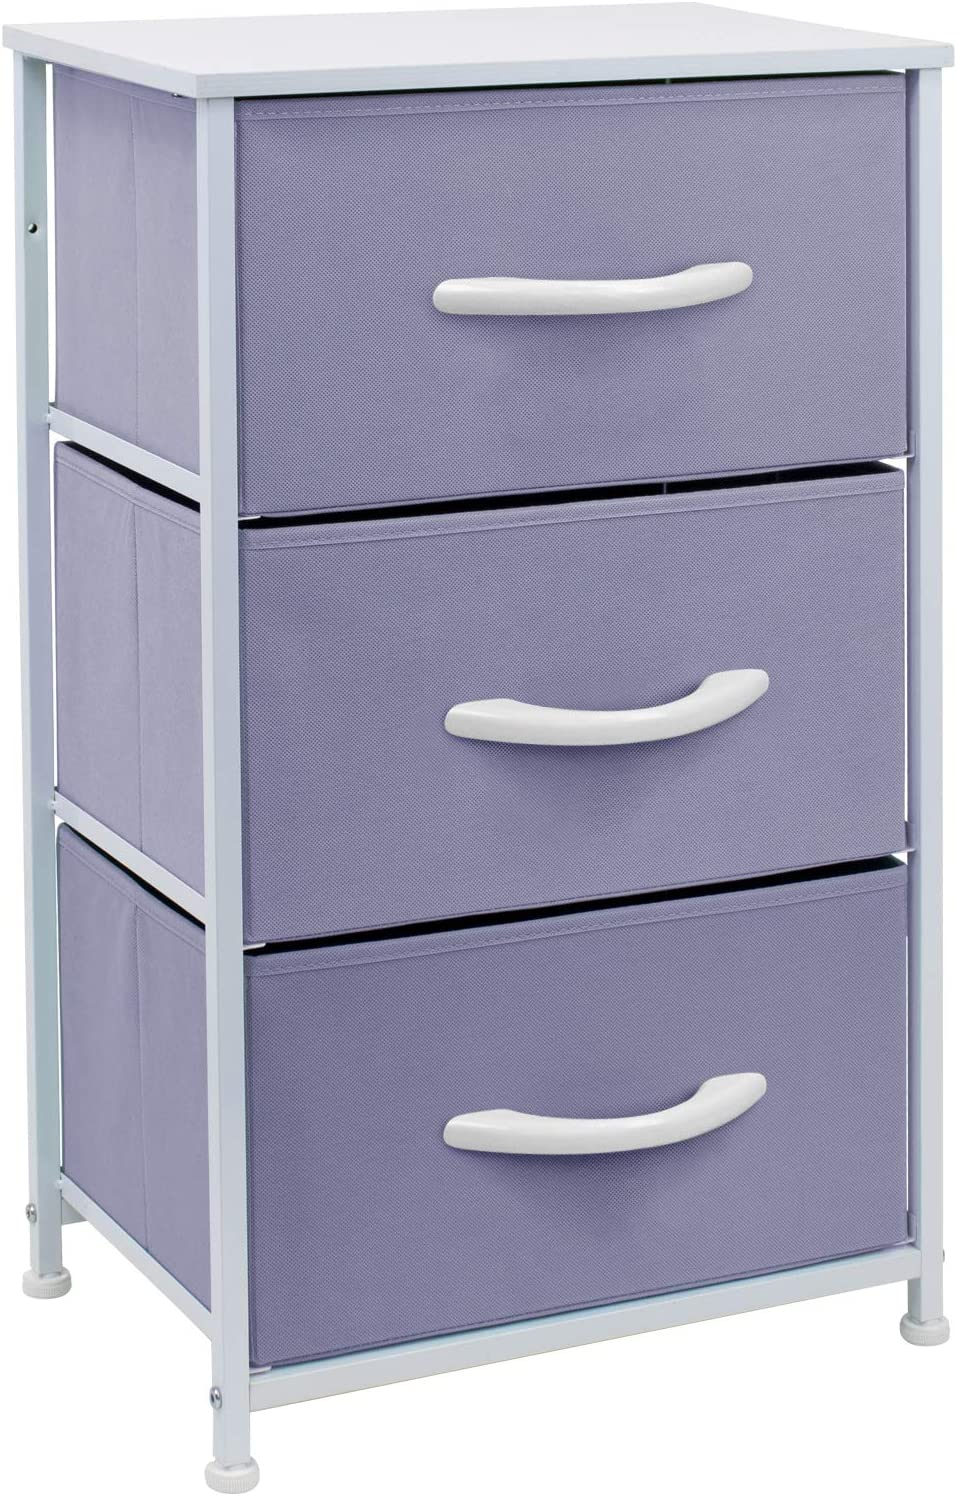 Sorbus Nightstand with 3 Drawers - Bedside Furniture & Accent End Table Chest for Home, Bedroom Accessories, Office, College Dorm, Steel Frame, Wood Top, Easy Pull Fabric Bins (Pastel Purple)